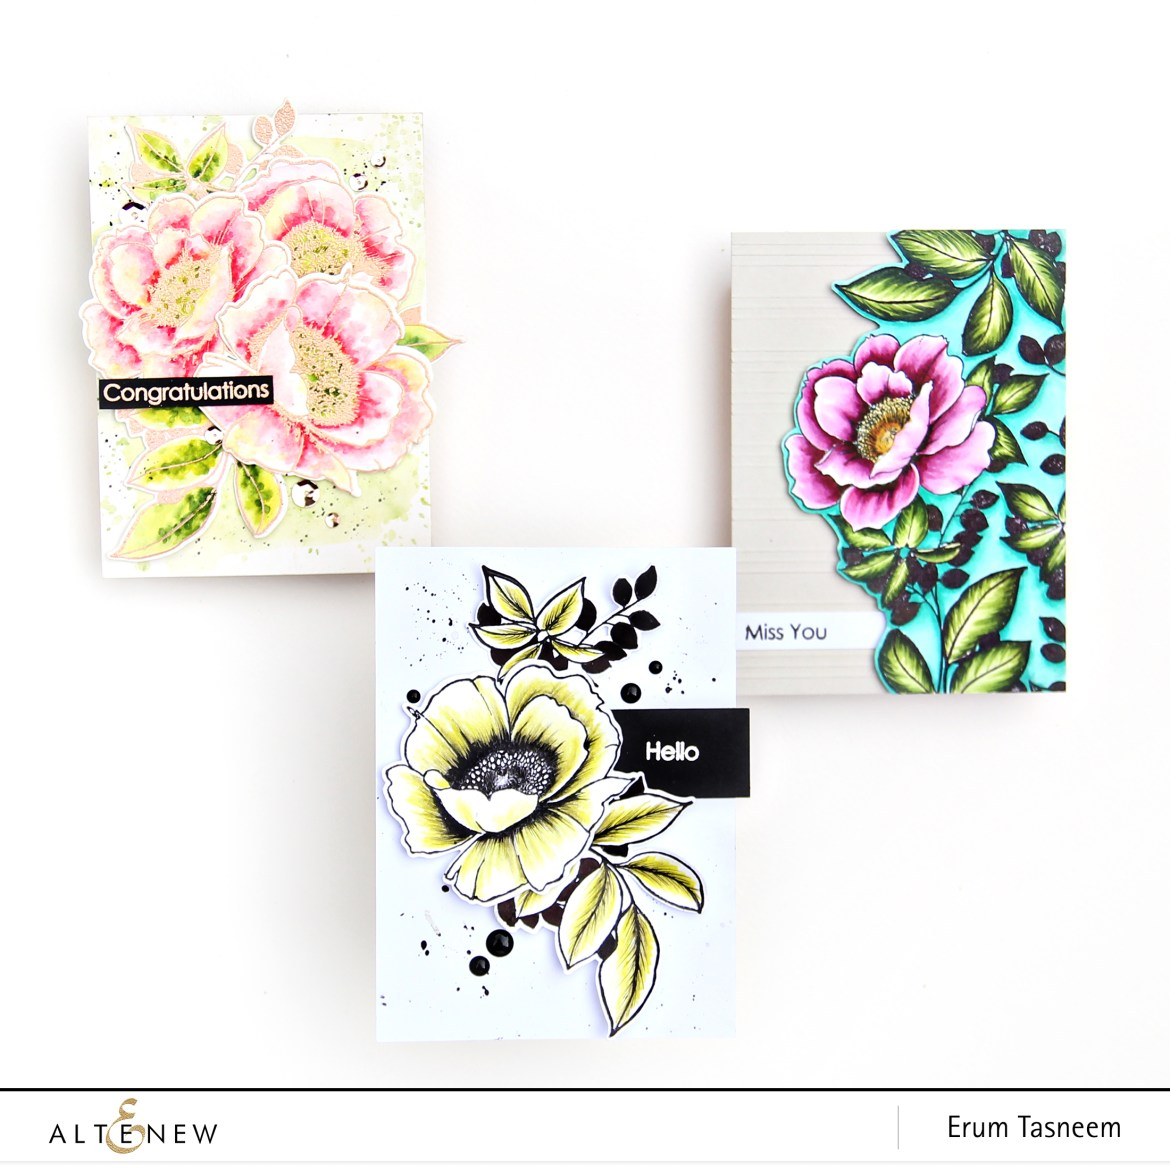 Altenew Wallpaper Art Stamp Set | Erum Tasneem | @pr0digy0